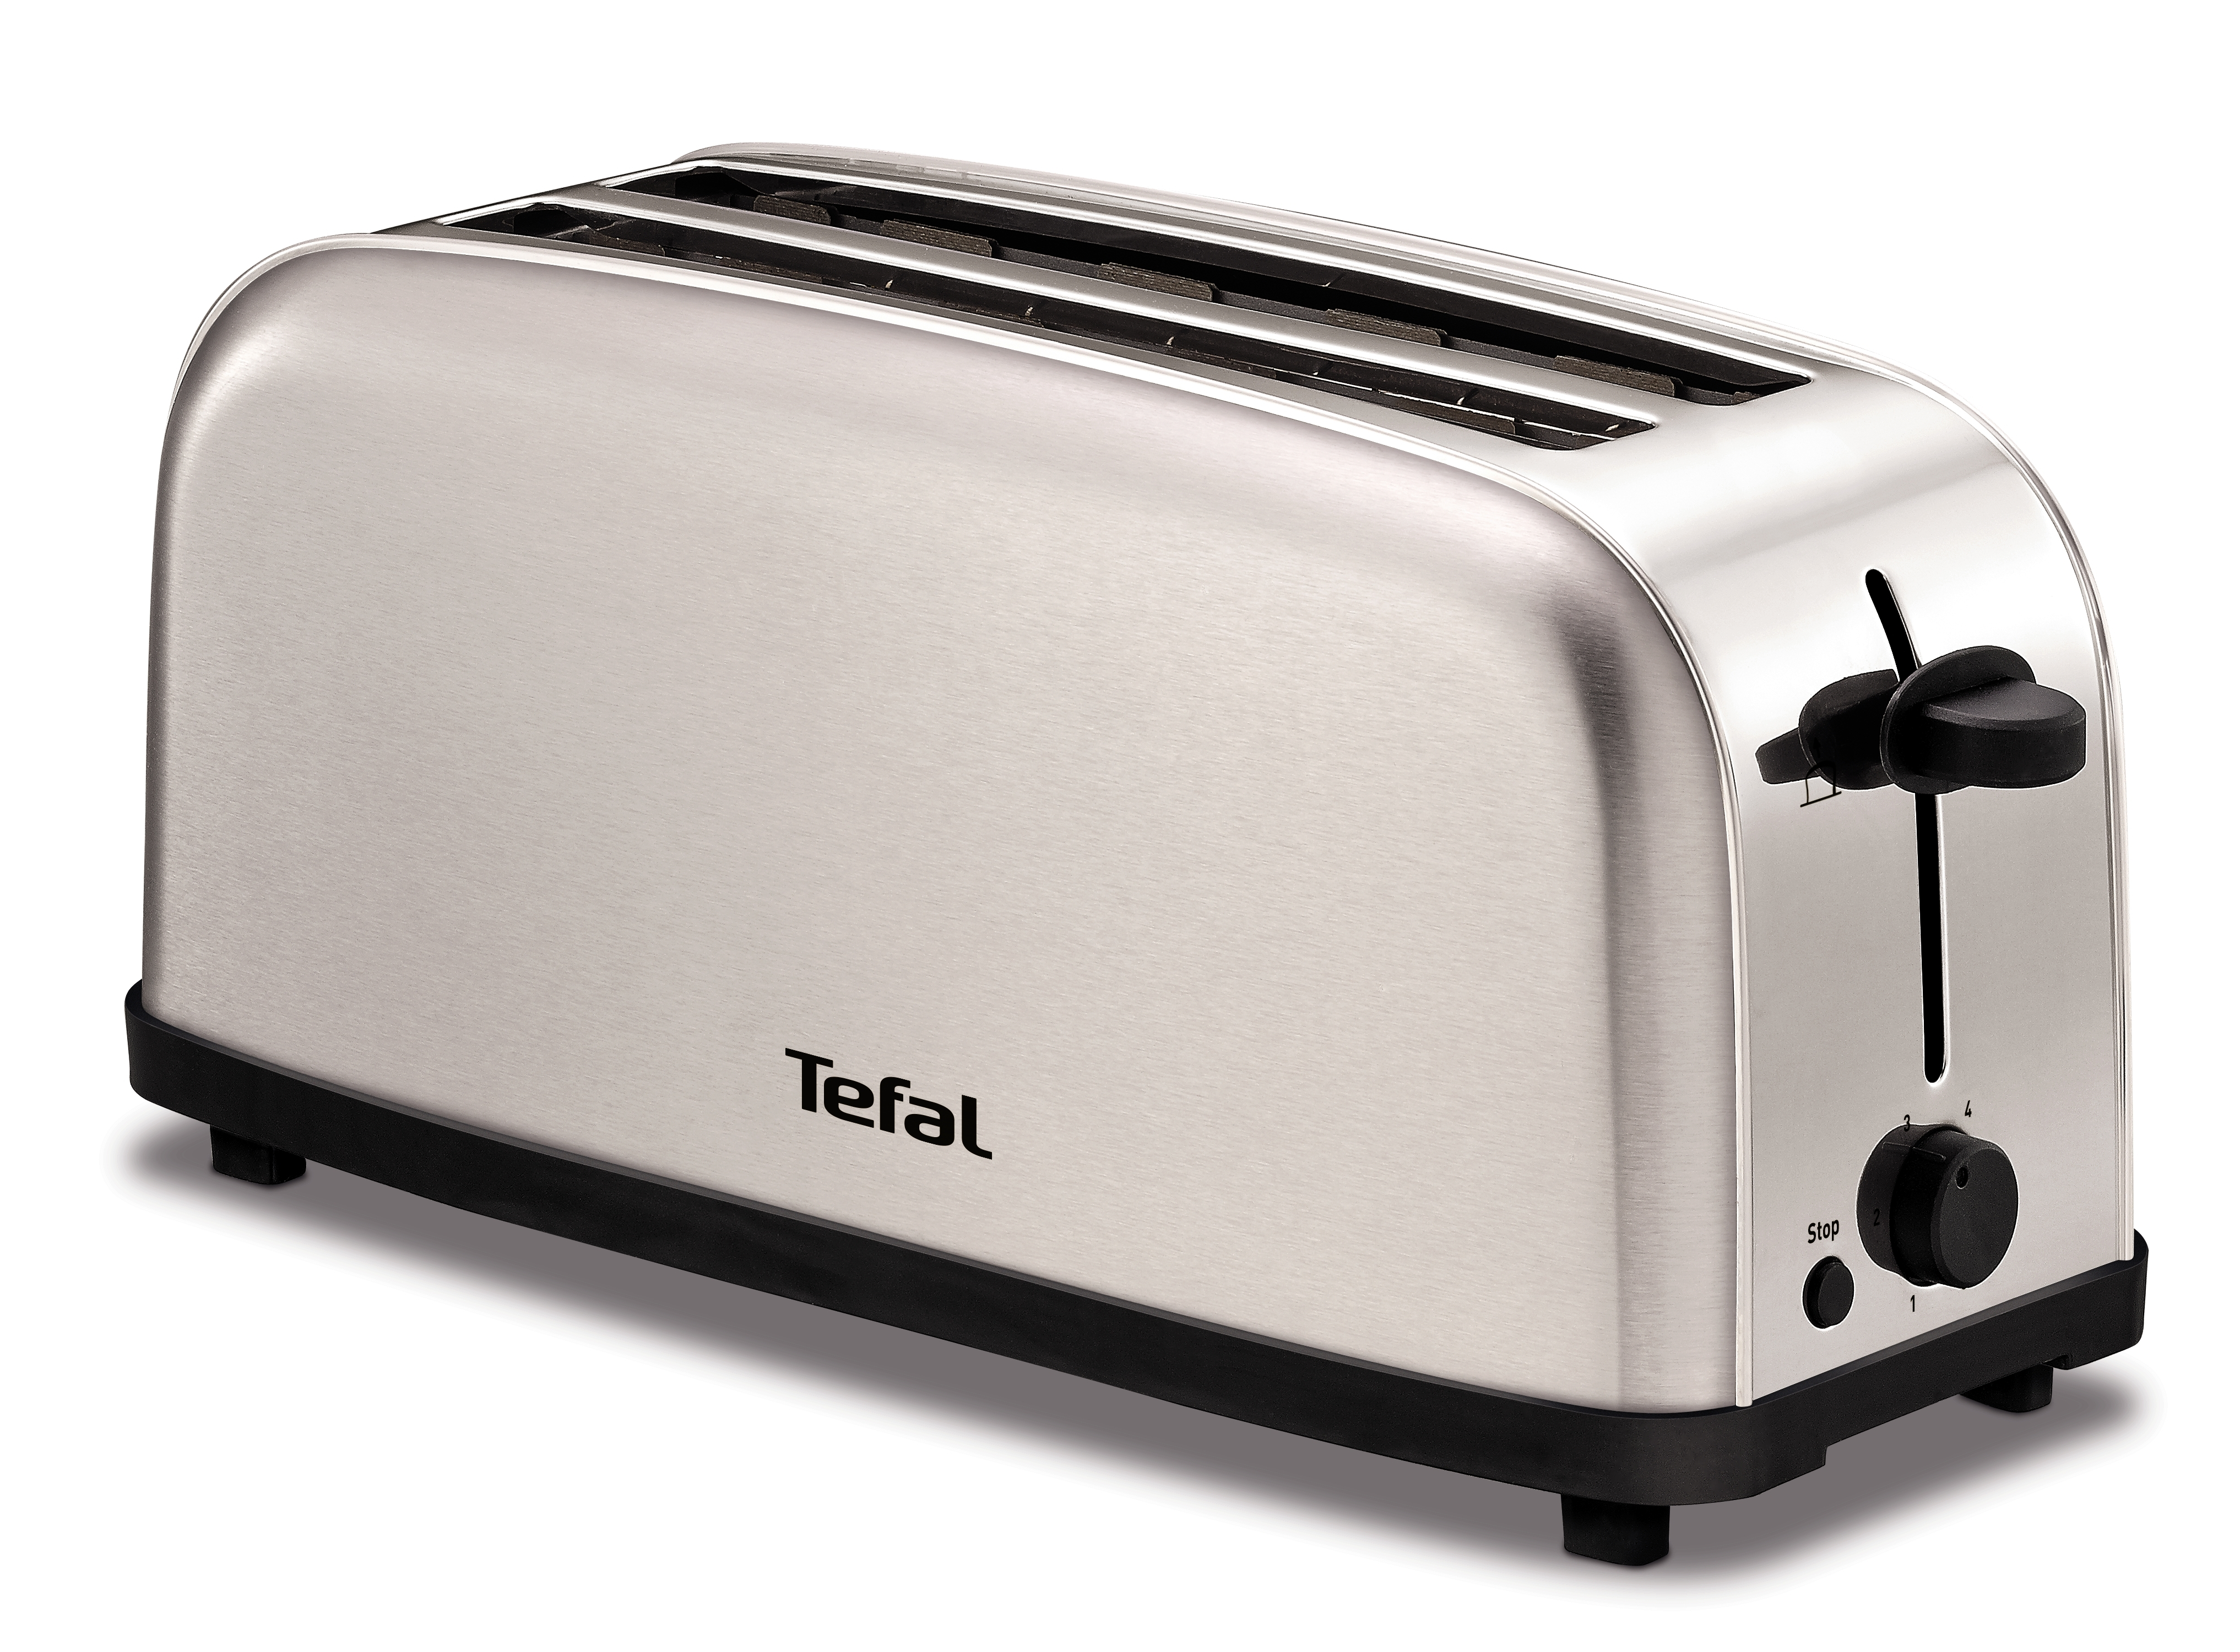 tefal grille pain equinox tl330d11 inox pas cher. Black Bedroom Furniture Sets. Home Design Ideas